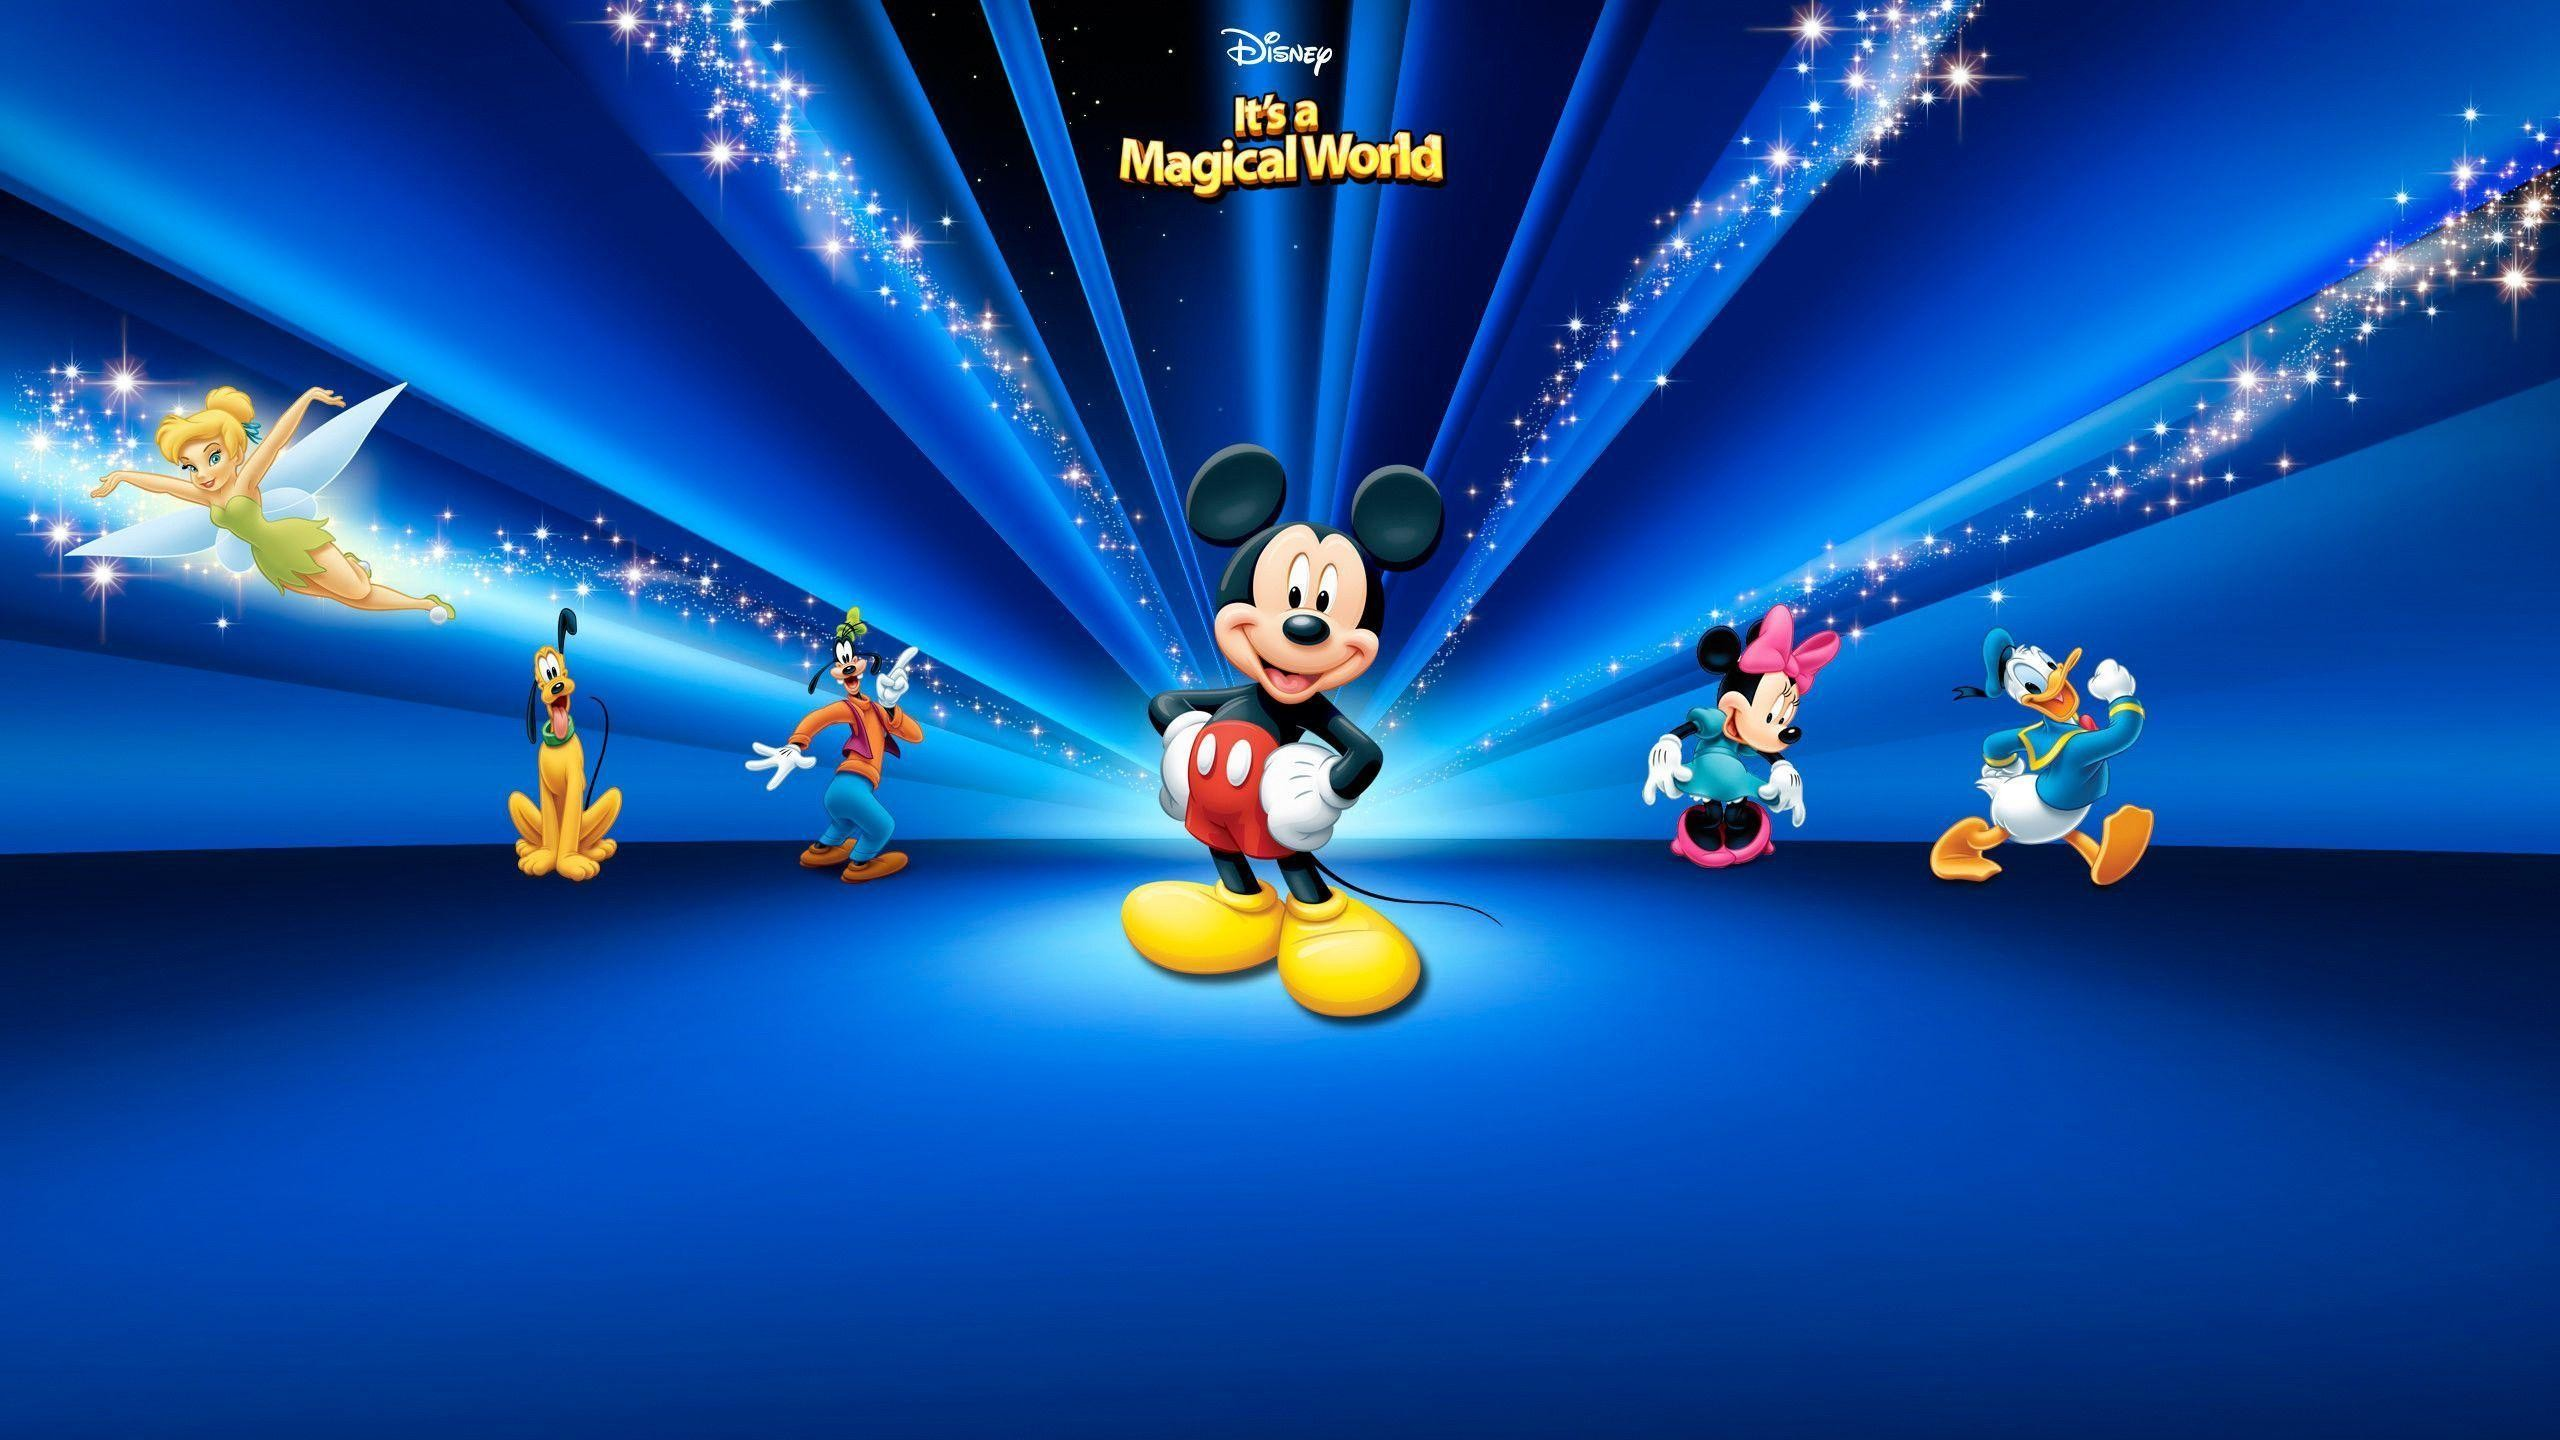 Res: 2560x1440, Wallpapers Tagged With DISNEY | DISNEY HD Wallpapers | Page 1